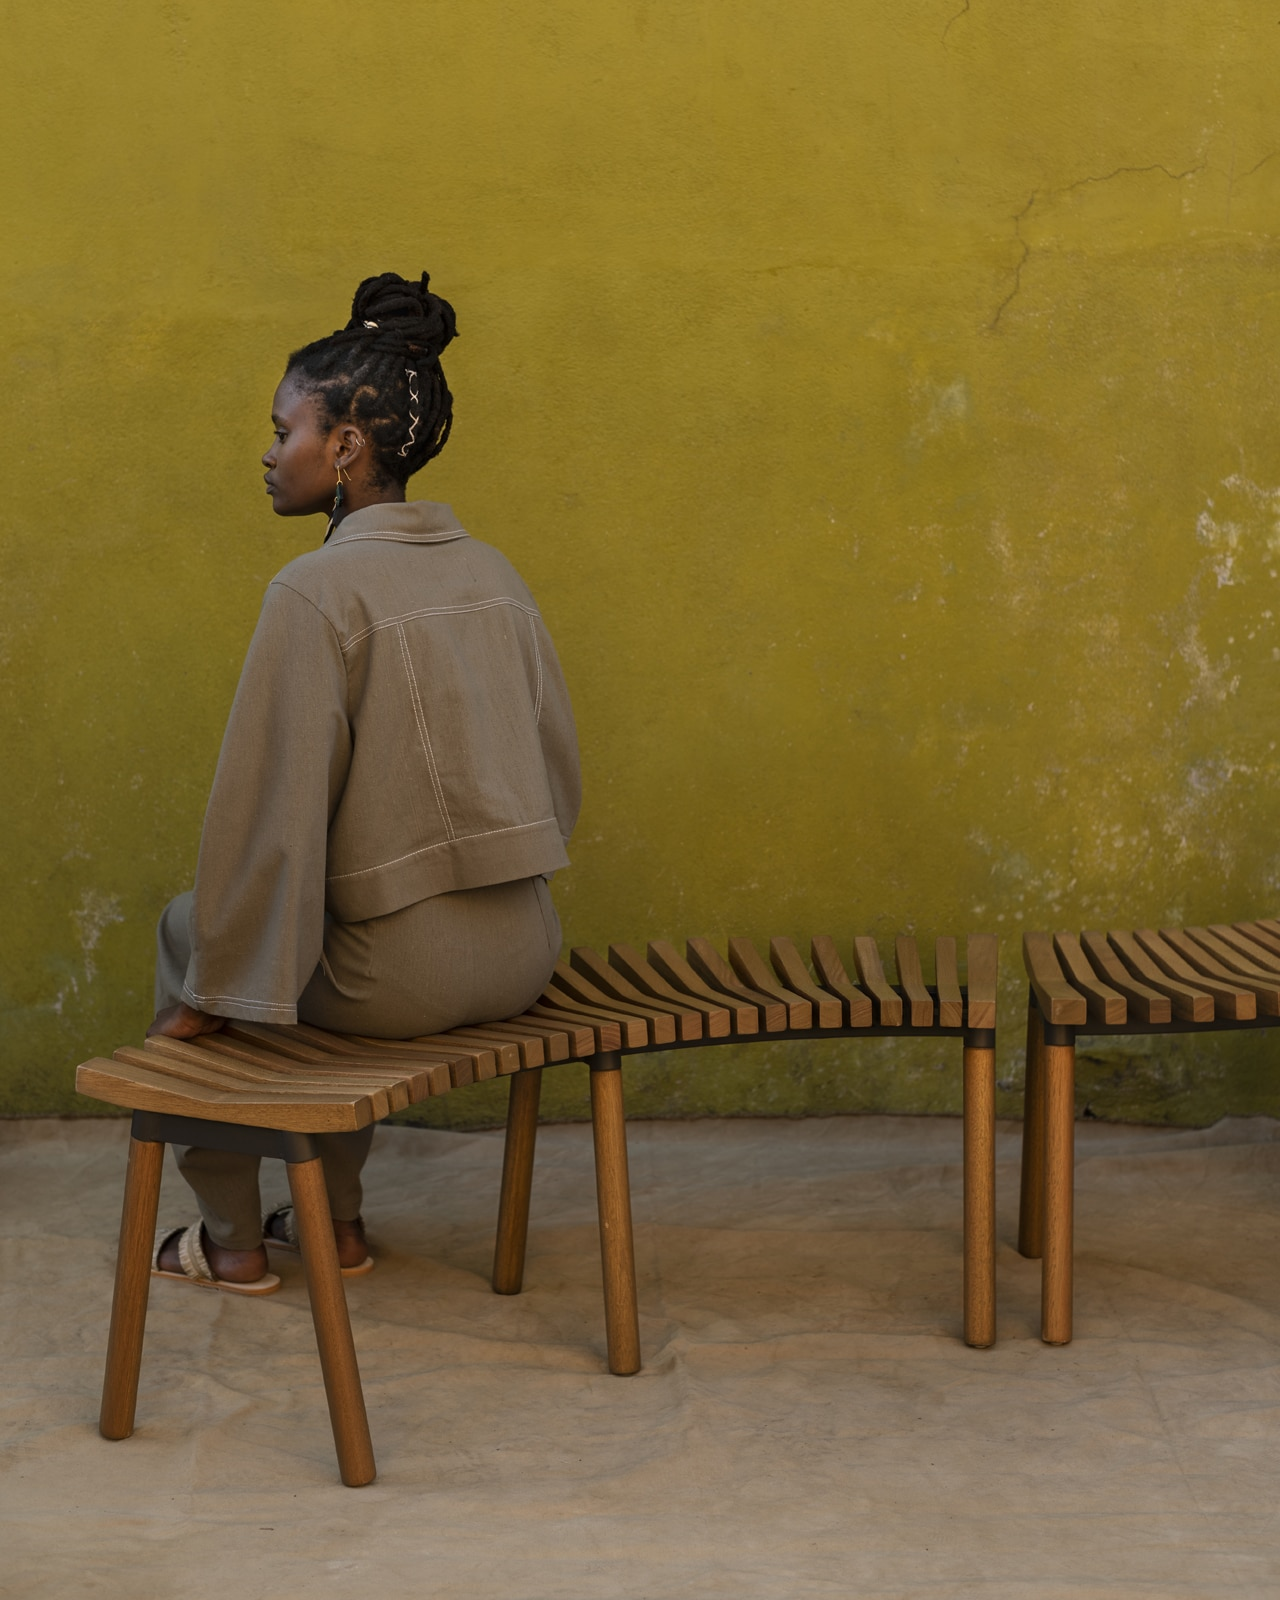 Ikea Launches Its Made In Africa Collection At Design Indaba